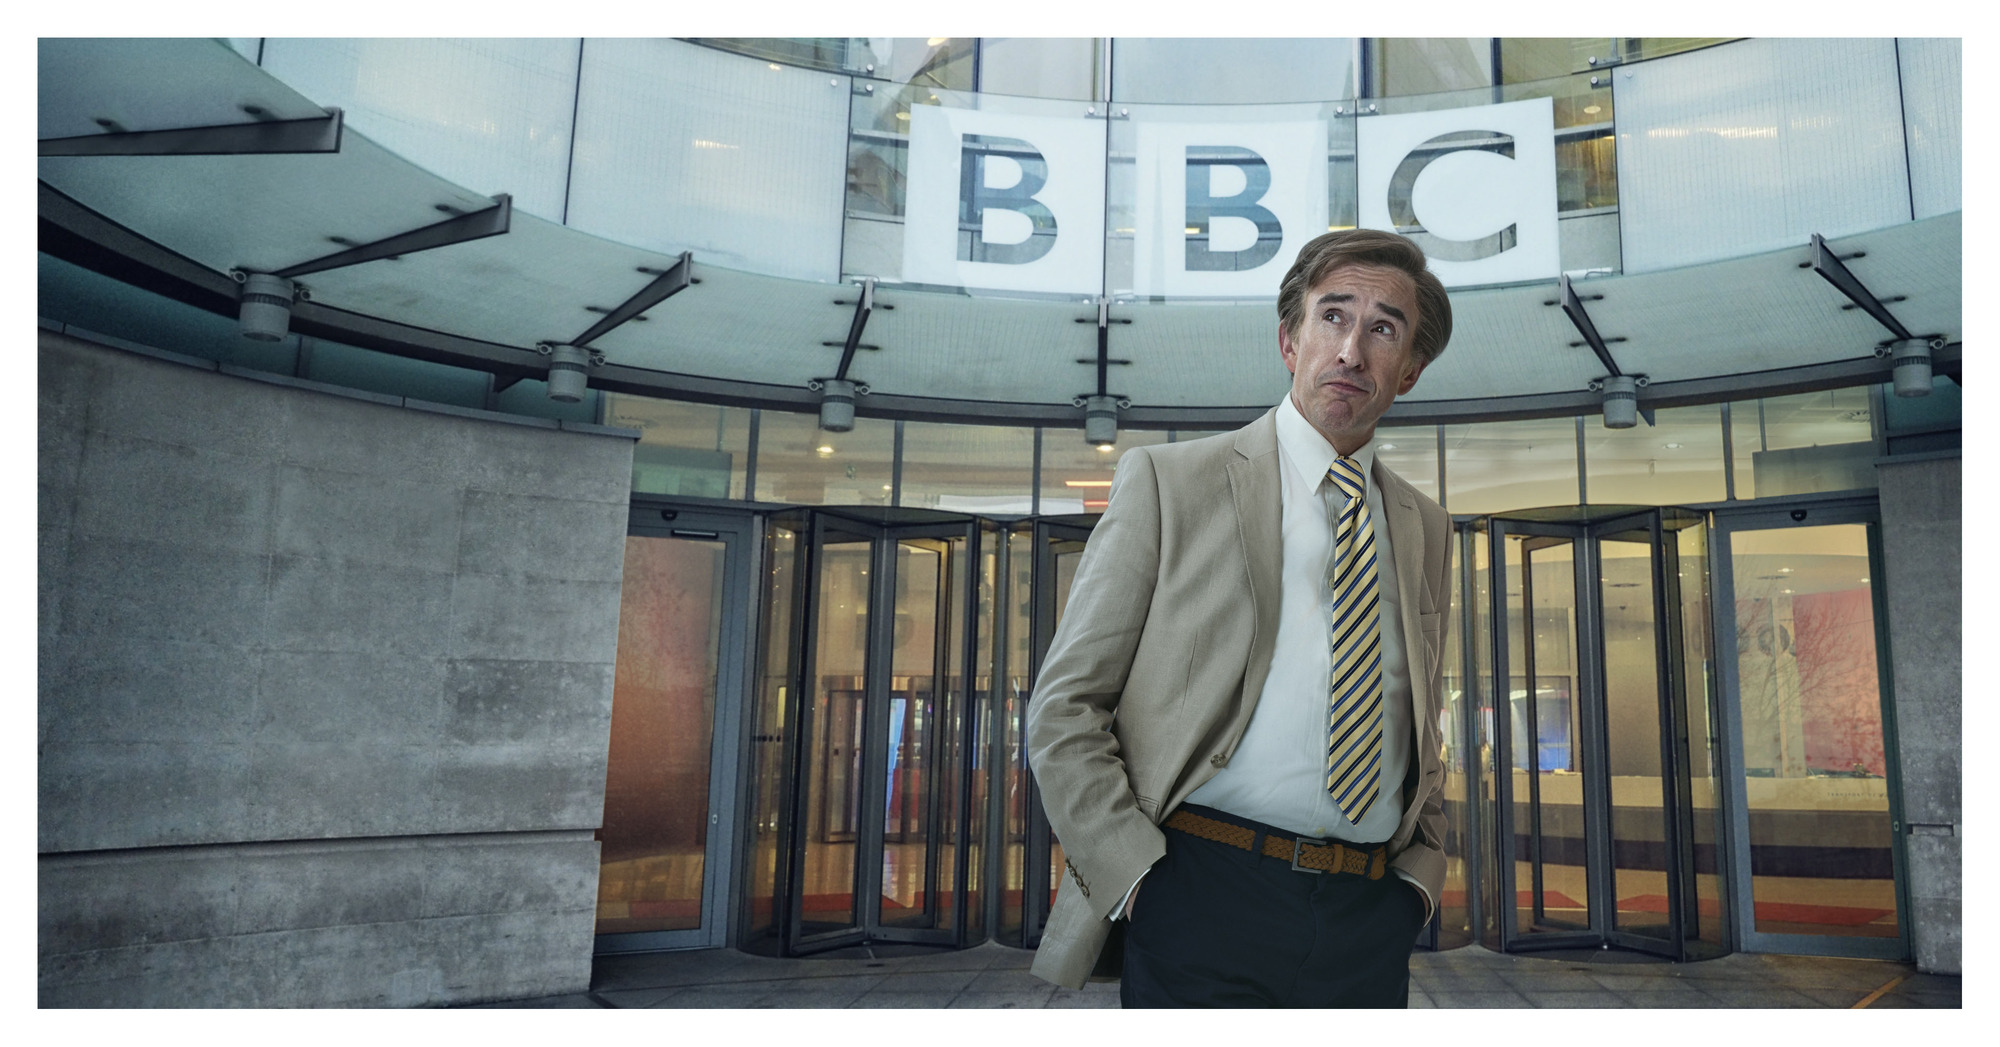 Alan Partridge will spoof The One Show in his new BBC series